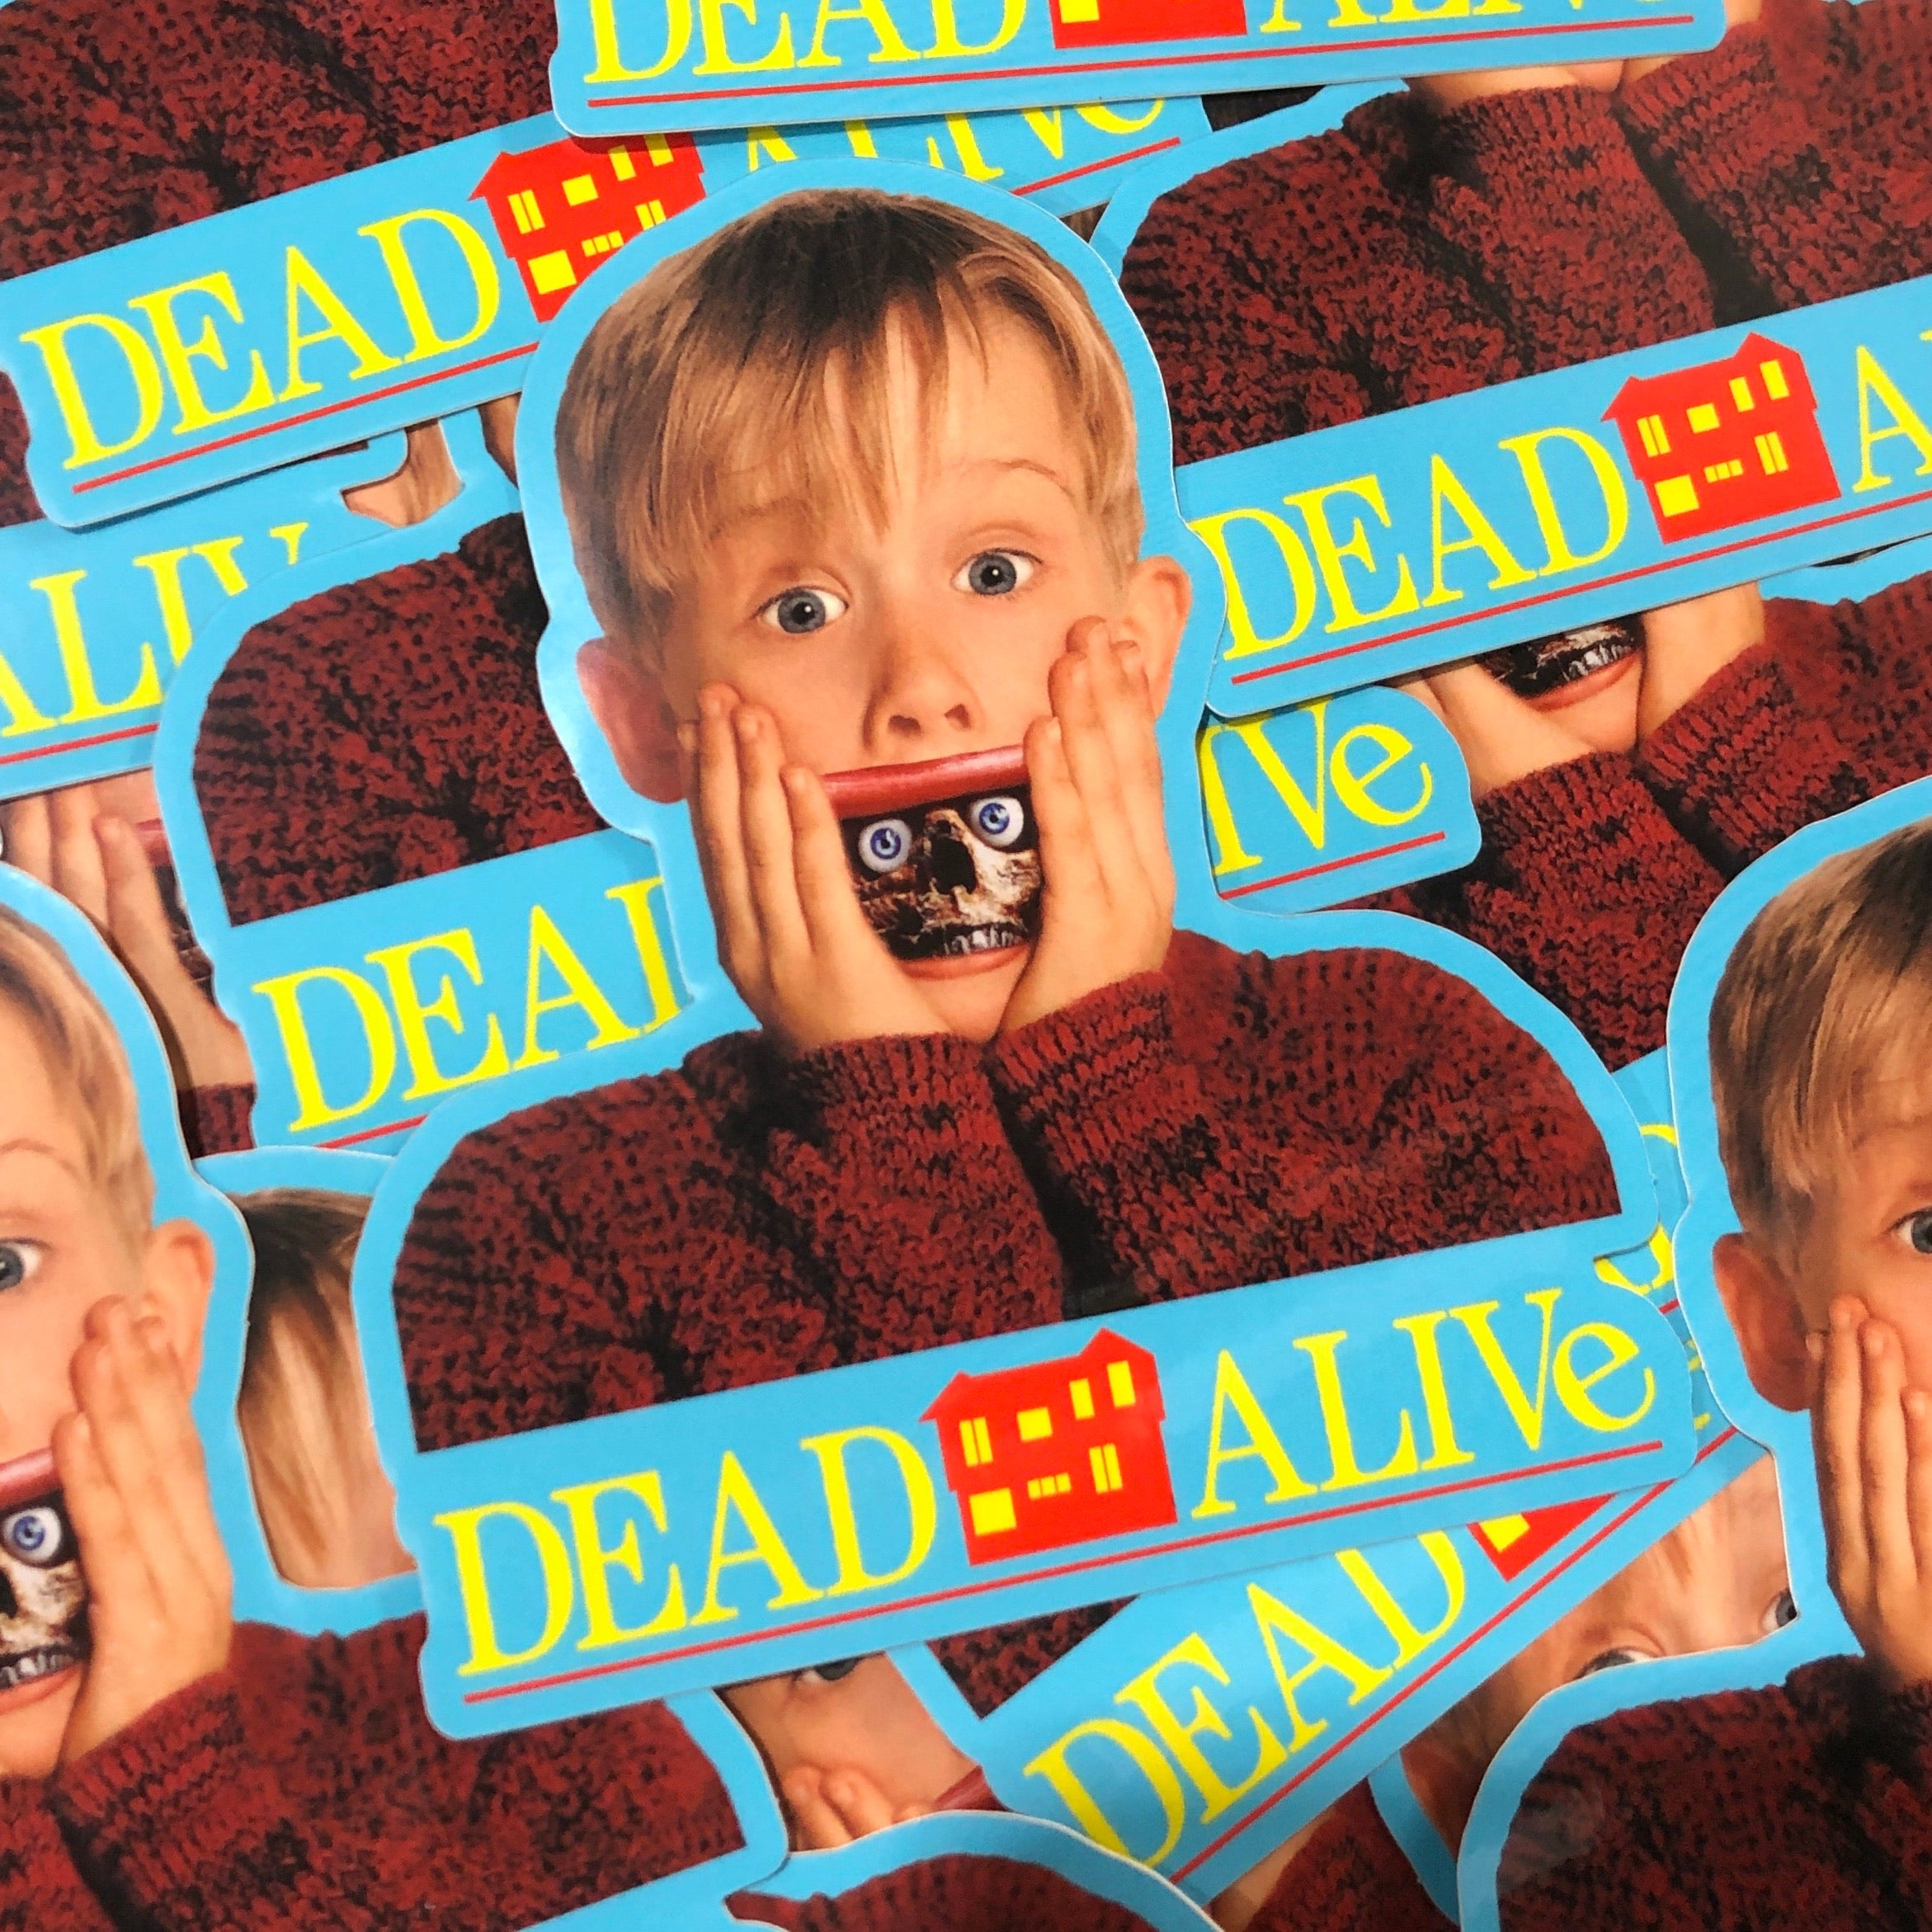 Dead Alone - Sticker